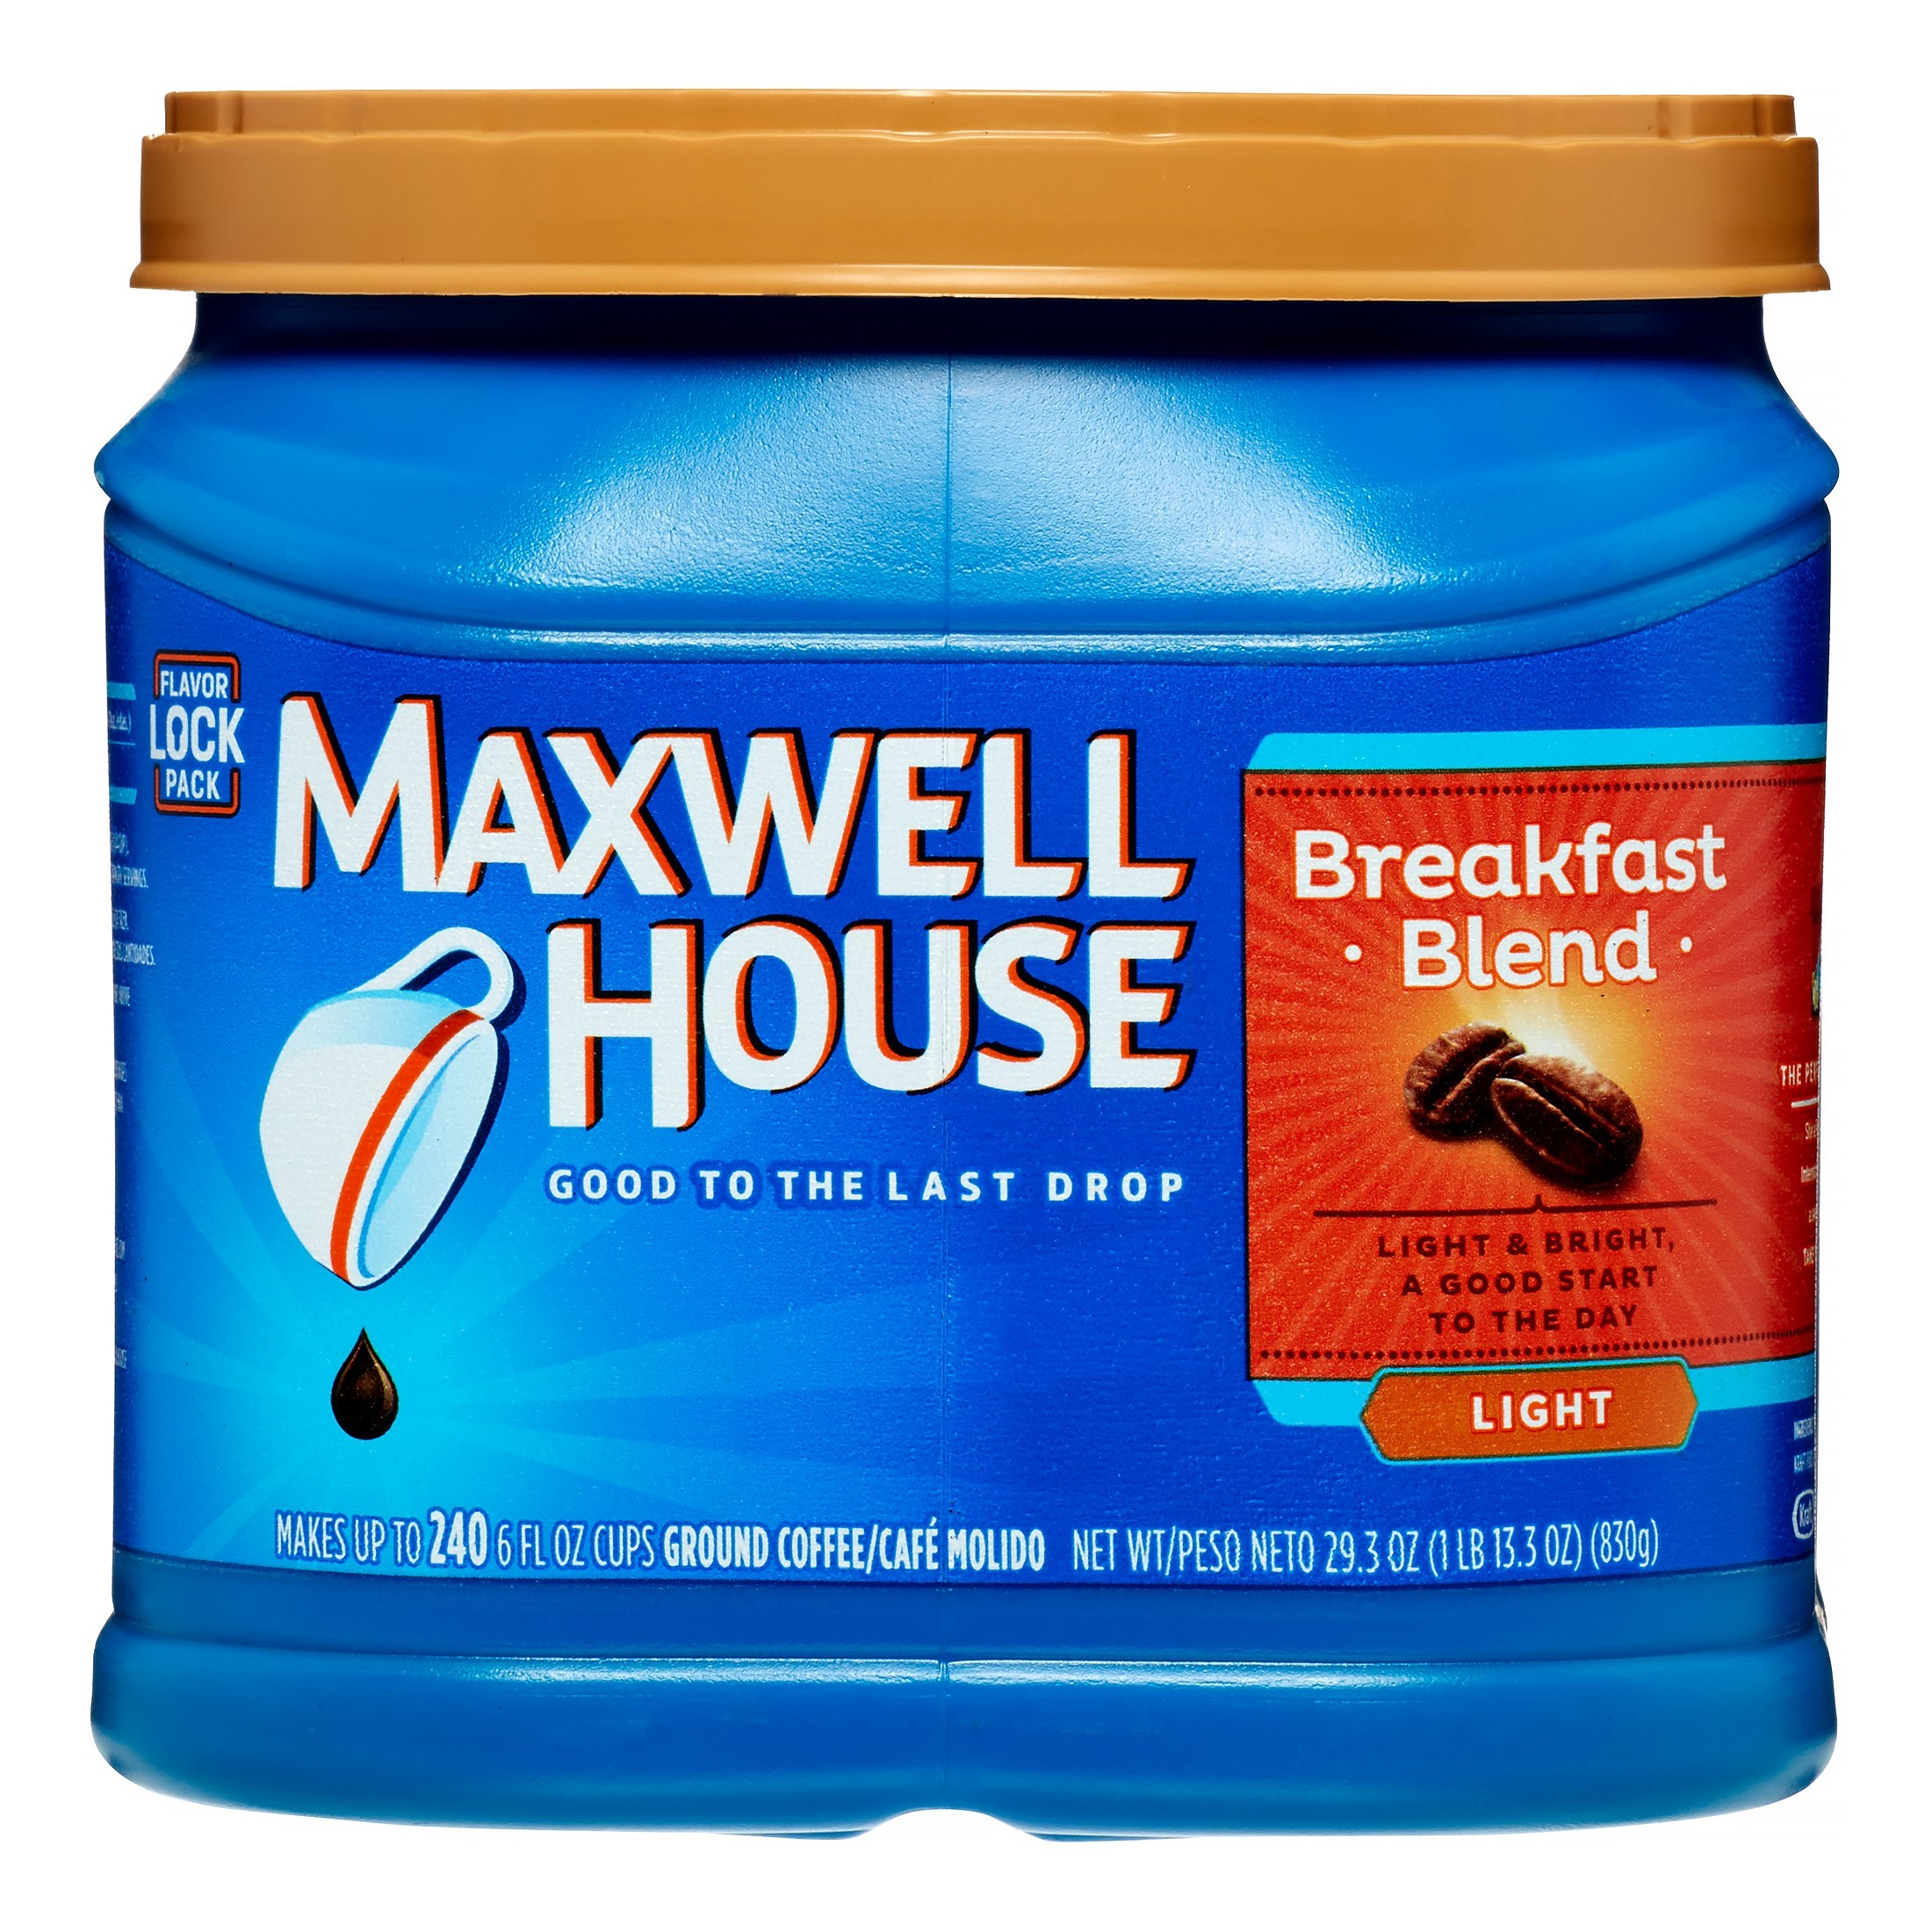 Maxwell House Light Roast Ground Coffee, Breakfast Blend, 29.3 Oz, 1 Ct